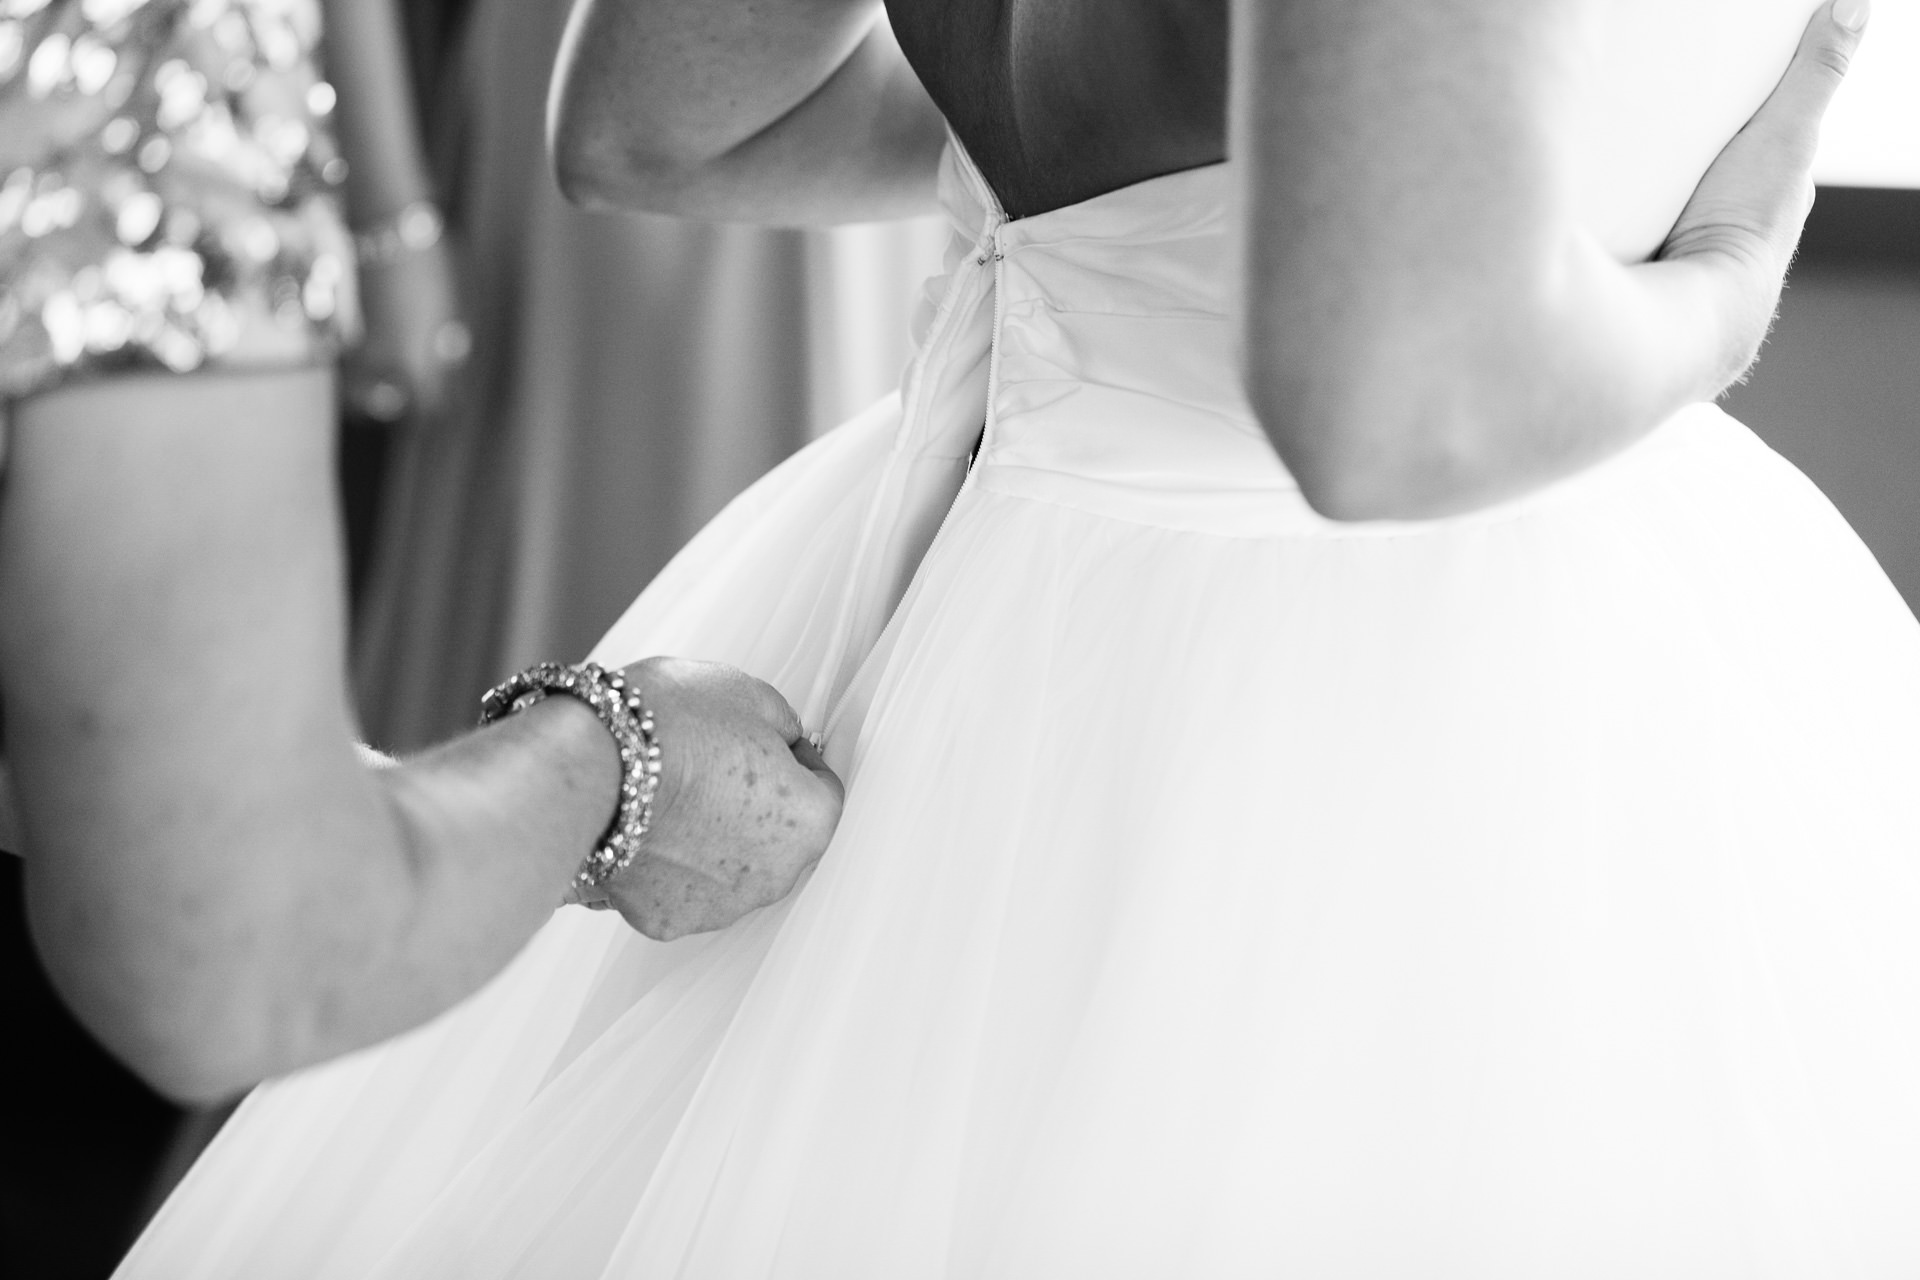 Ballpark Hilton Traditional and Nontraditional Jewish Wedding and Reception in St Louis MO photos by St Louis Wedding Photographers TJ and Nichole Oldani Photography 18.jpg